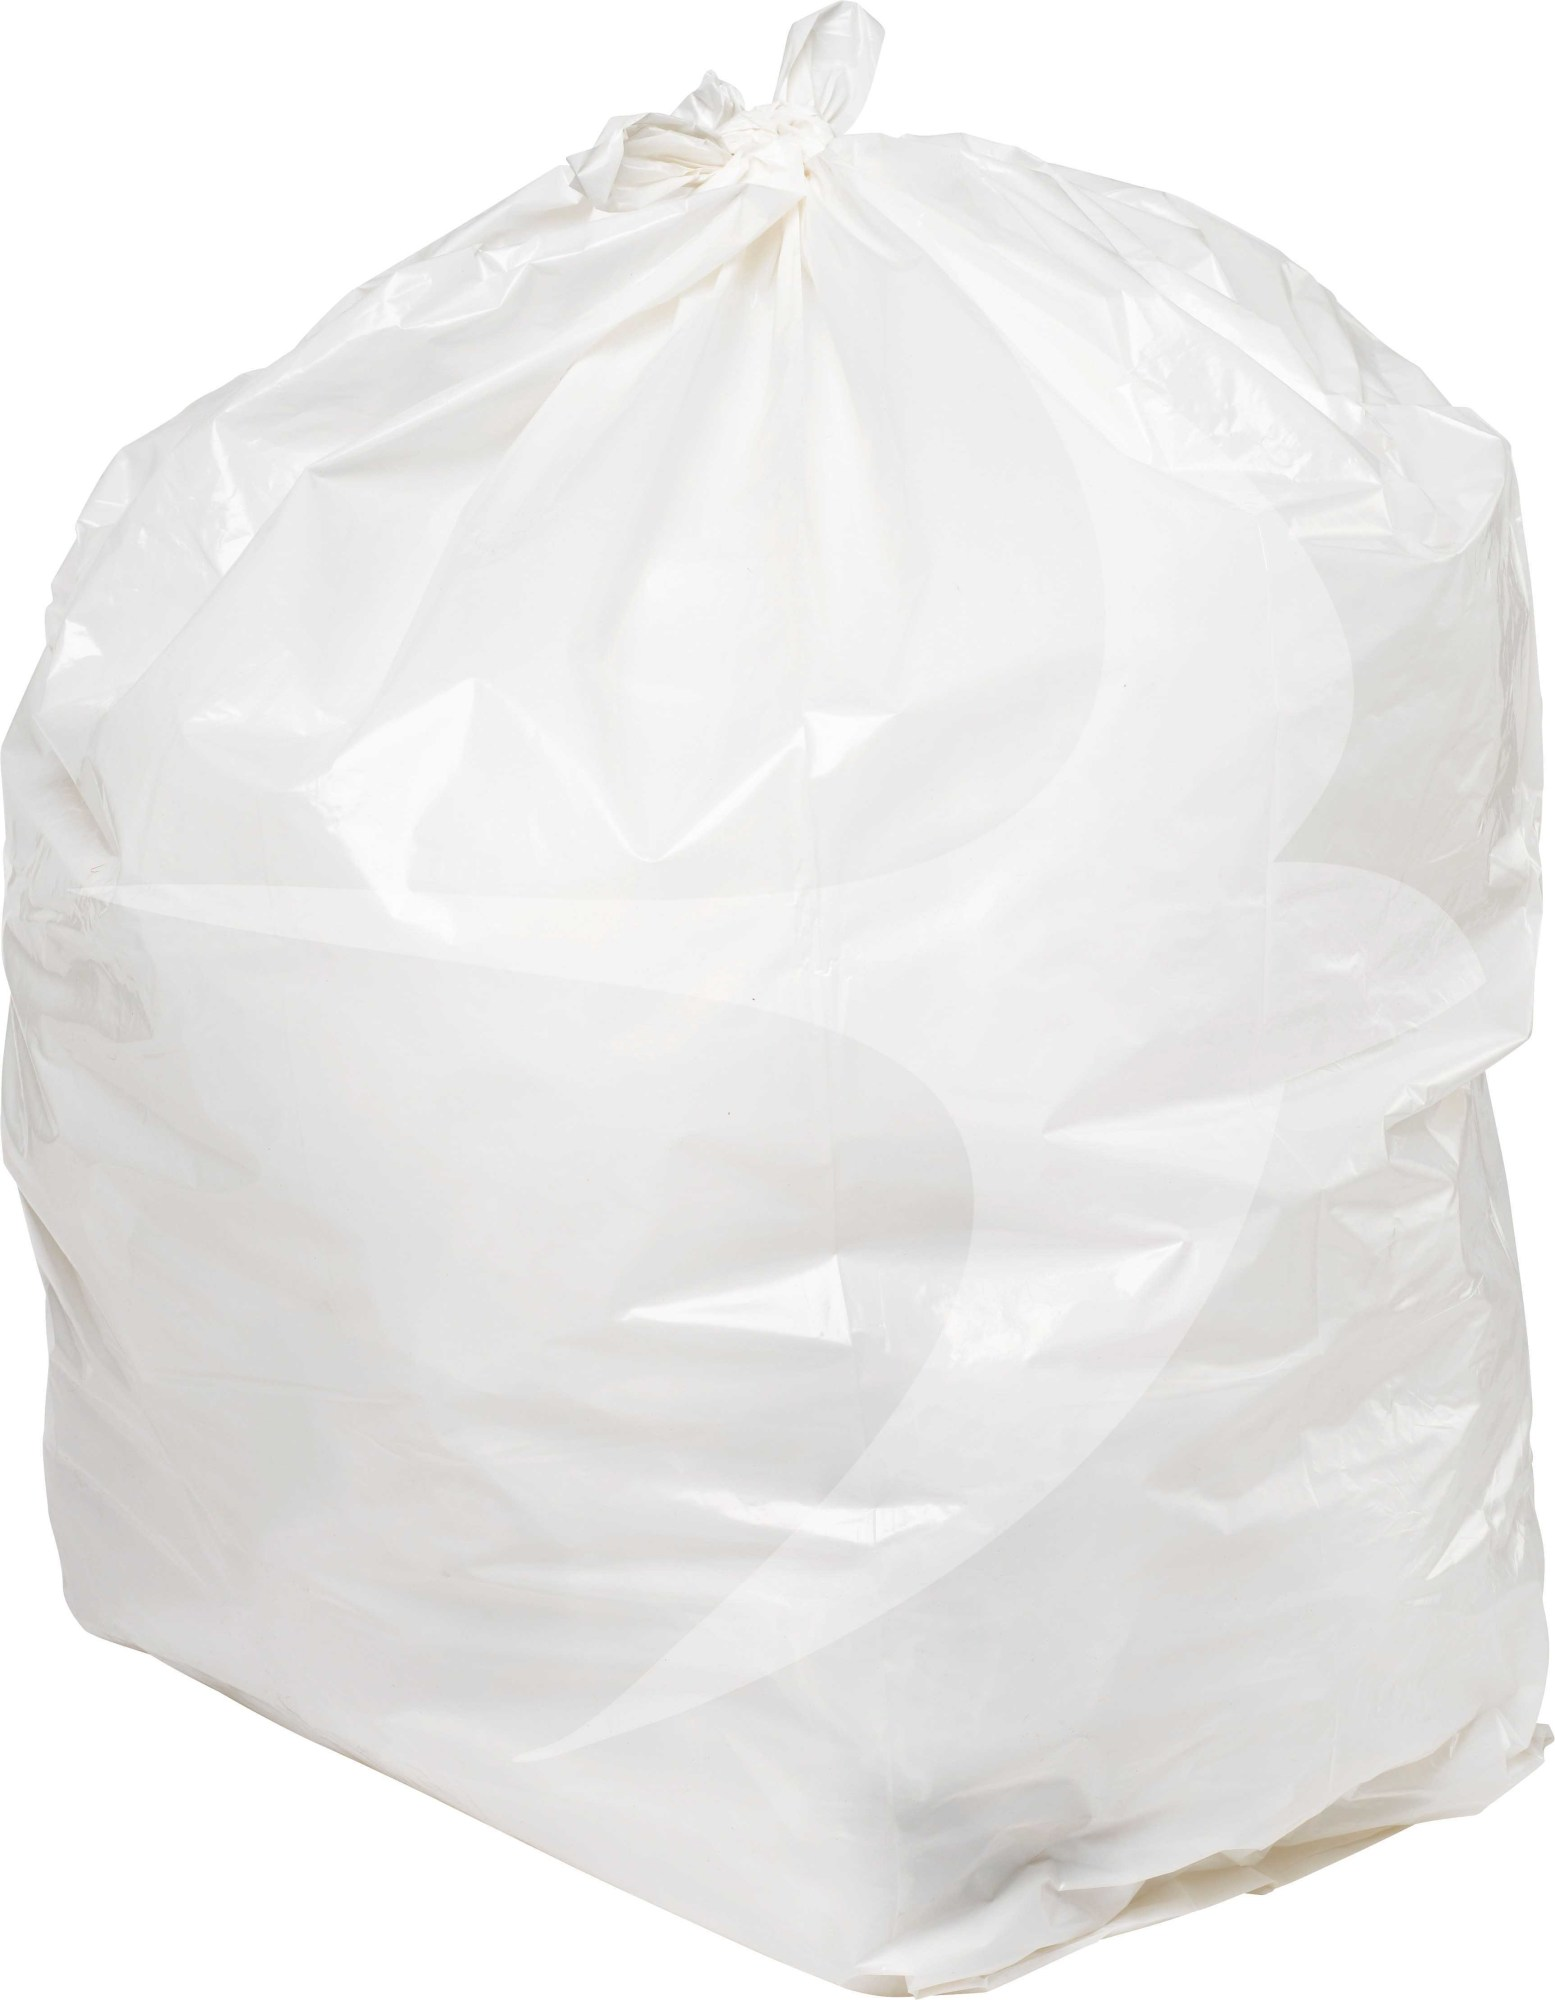 406 x 625 x 975mm Light Duty Clear Refuse Sacks